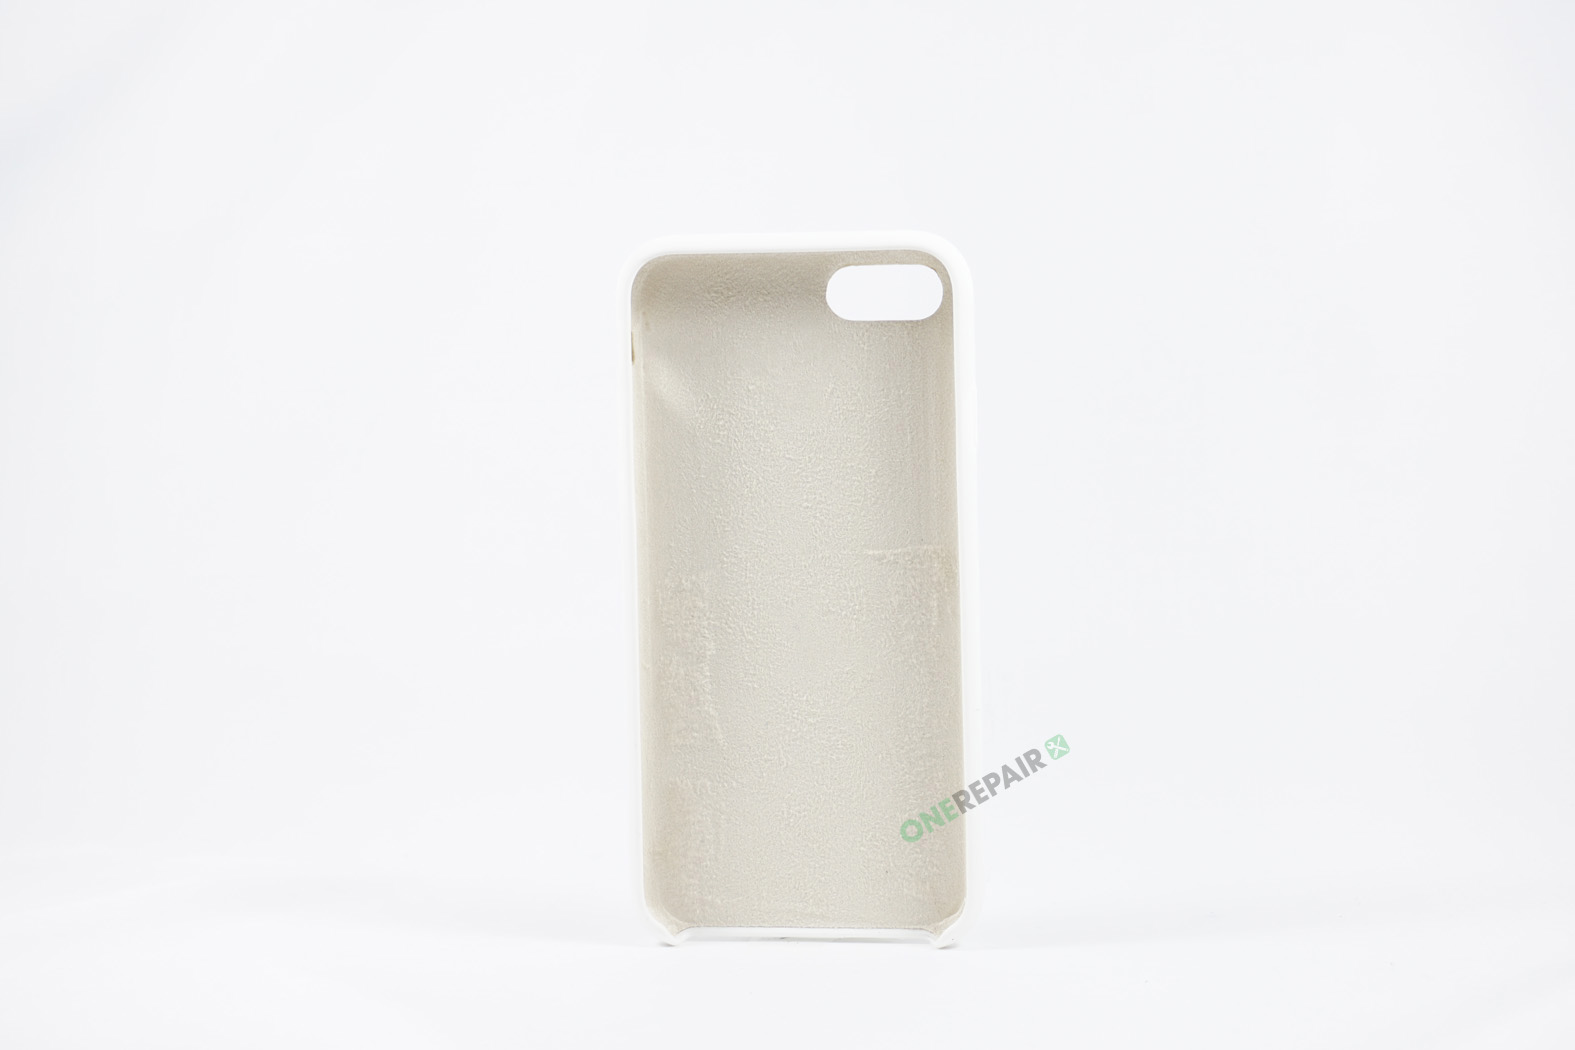 350754_iPhone_7_8_Silikonecover_Cover_Hvid_OneRepair_WM_00003